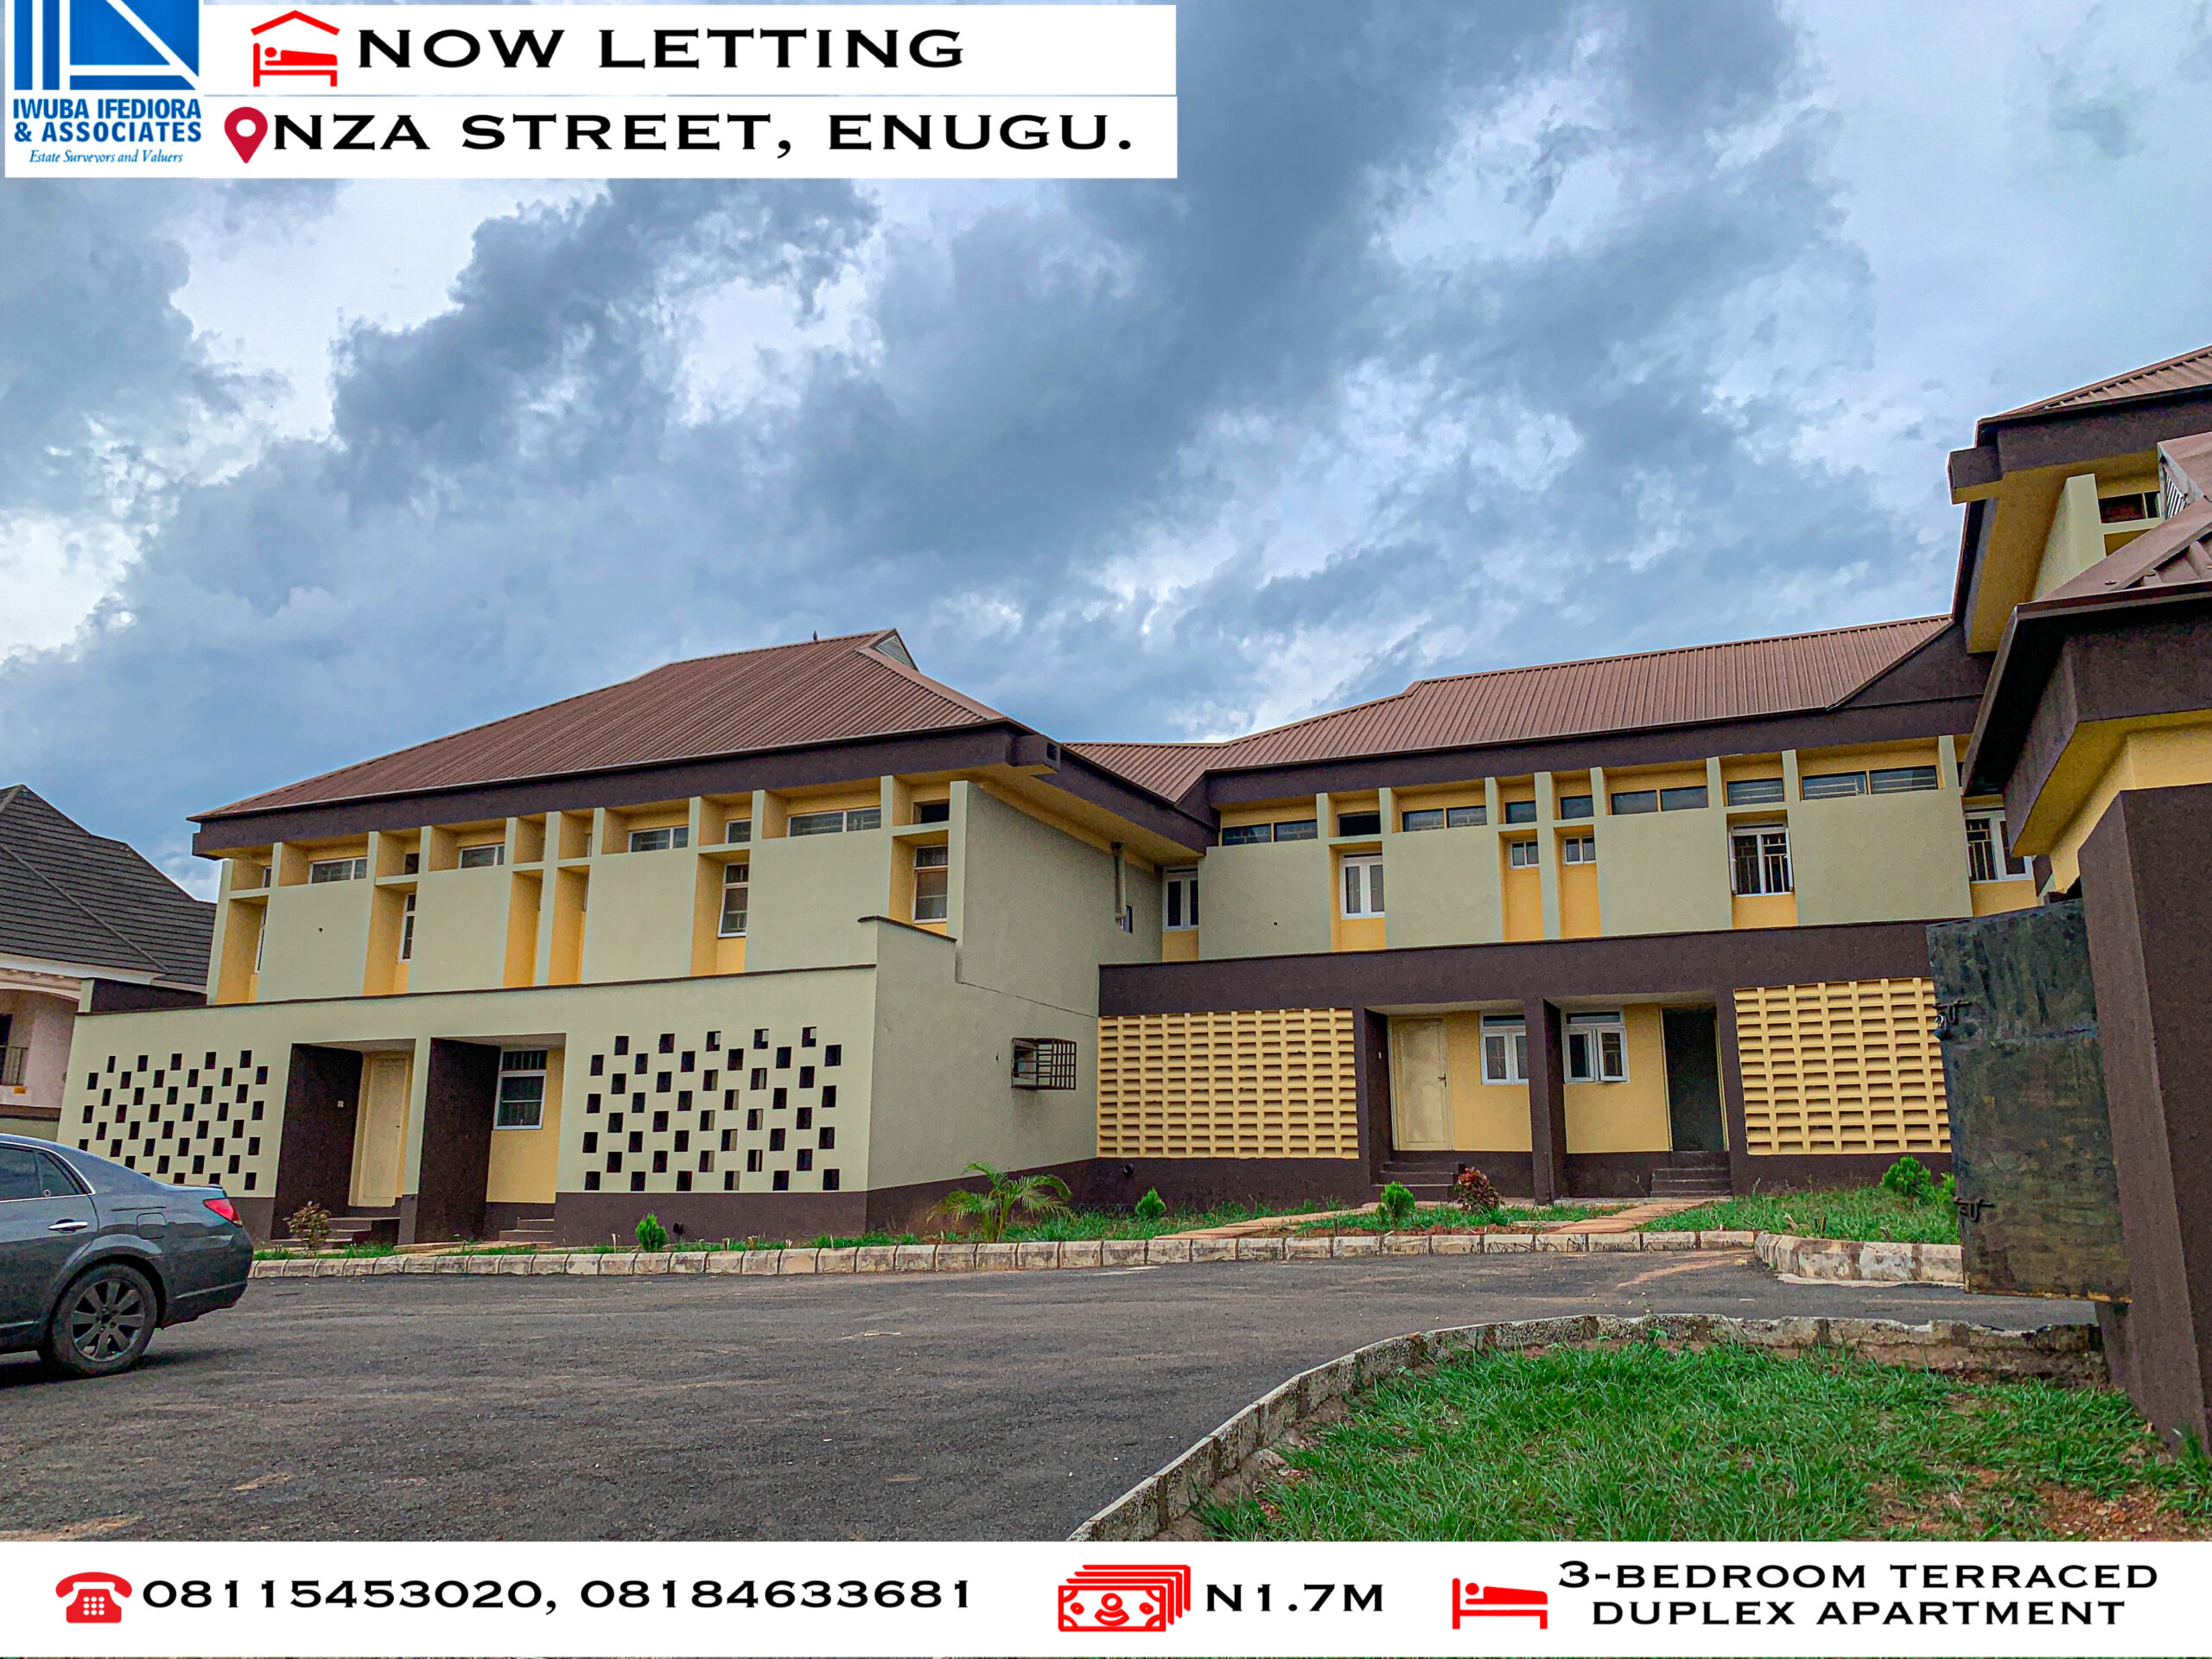 3-Bedroom Terraced Duplex Apartment at Nza Street, Independence Layout. Enugu State.